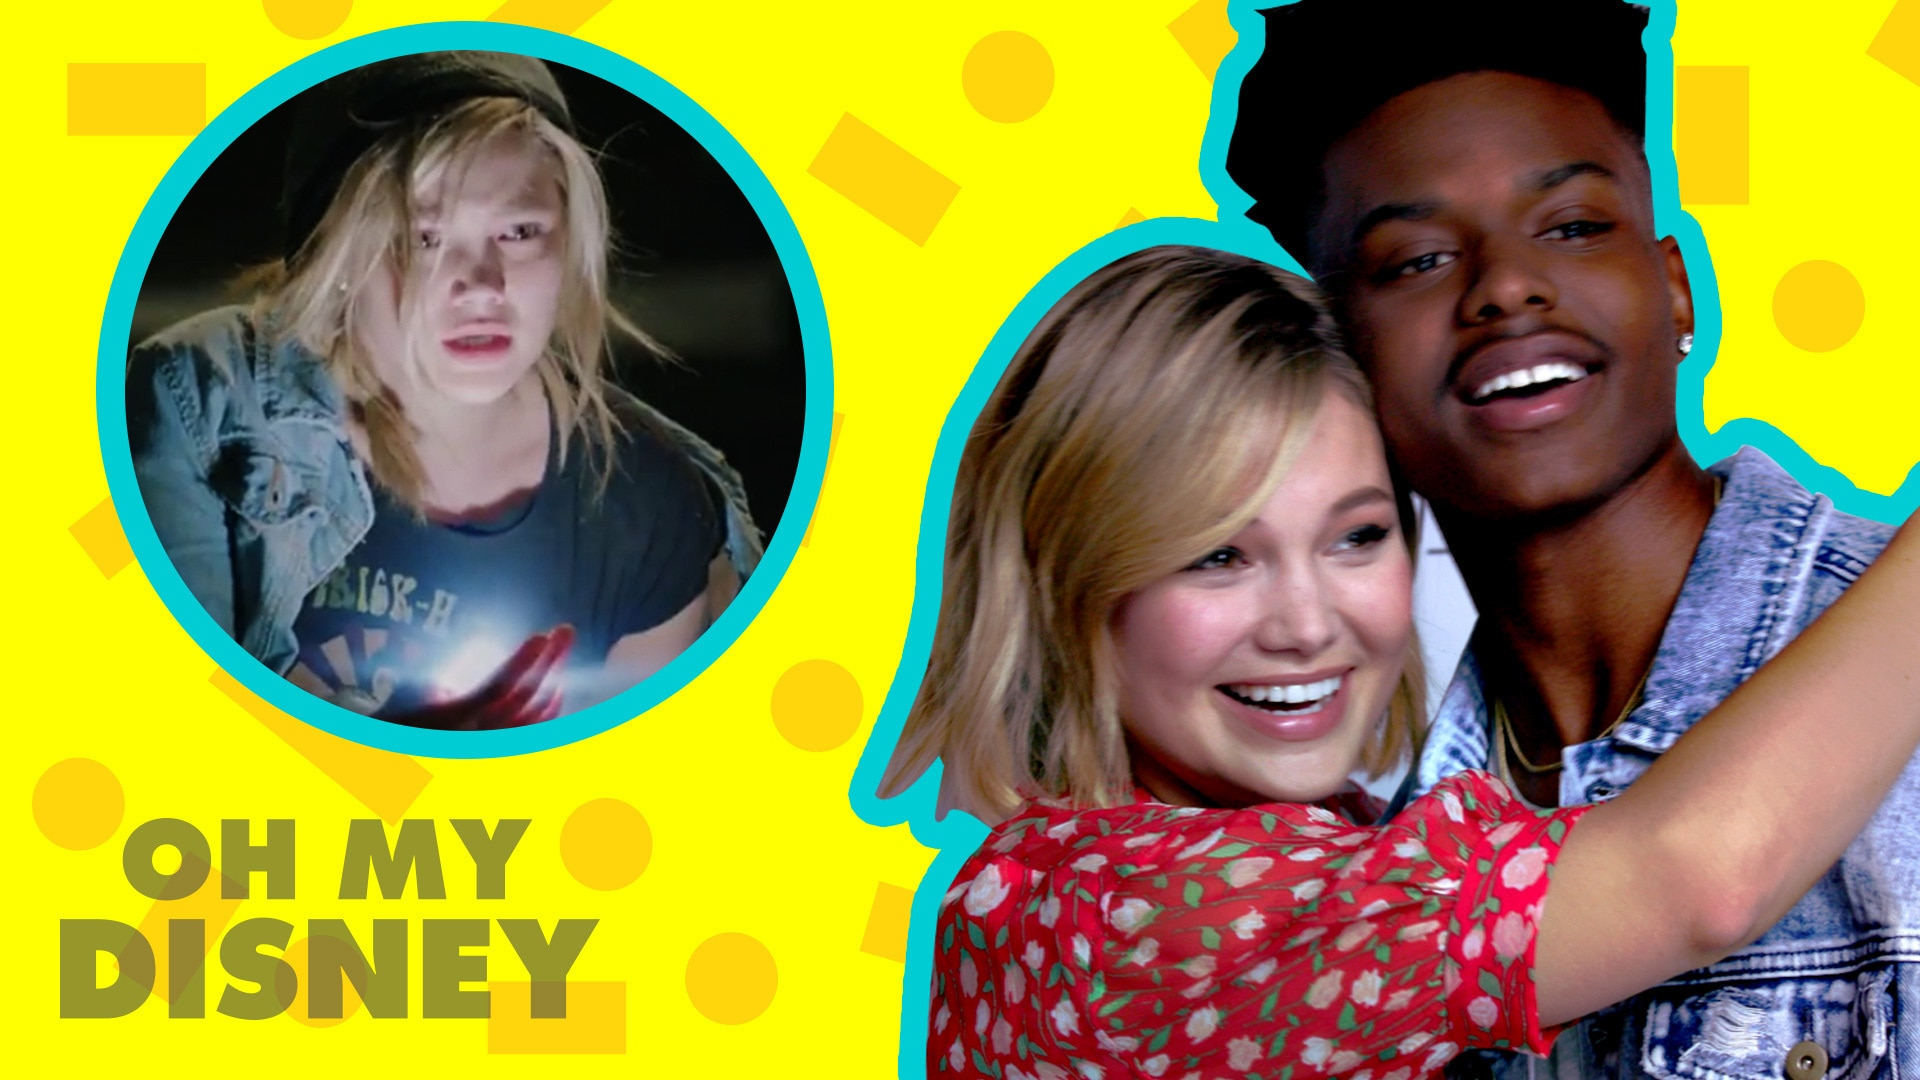 Cloak and Dagger Try to Read Each Other's Minds | Oh My Disney